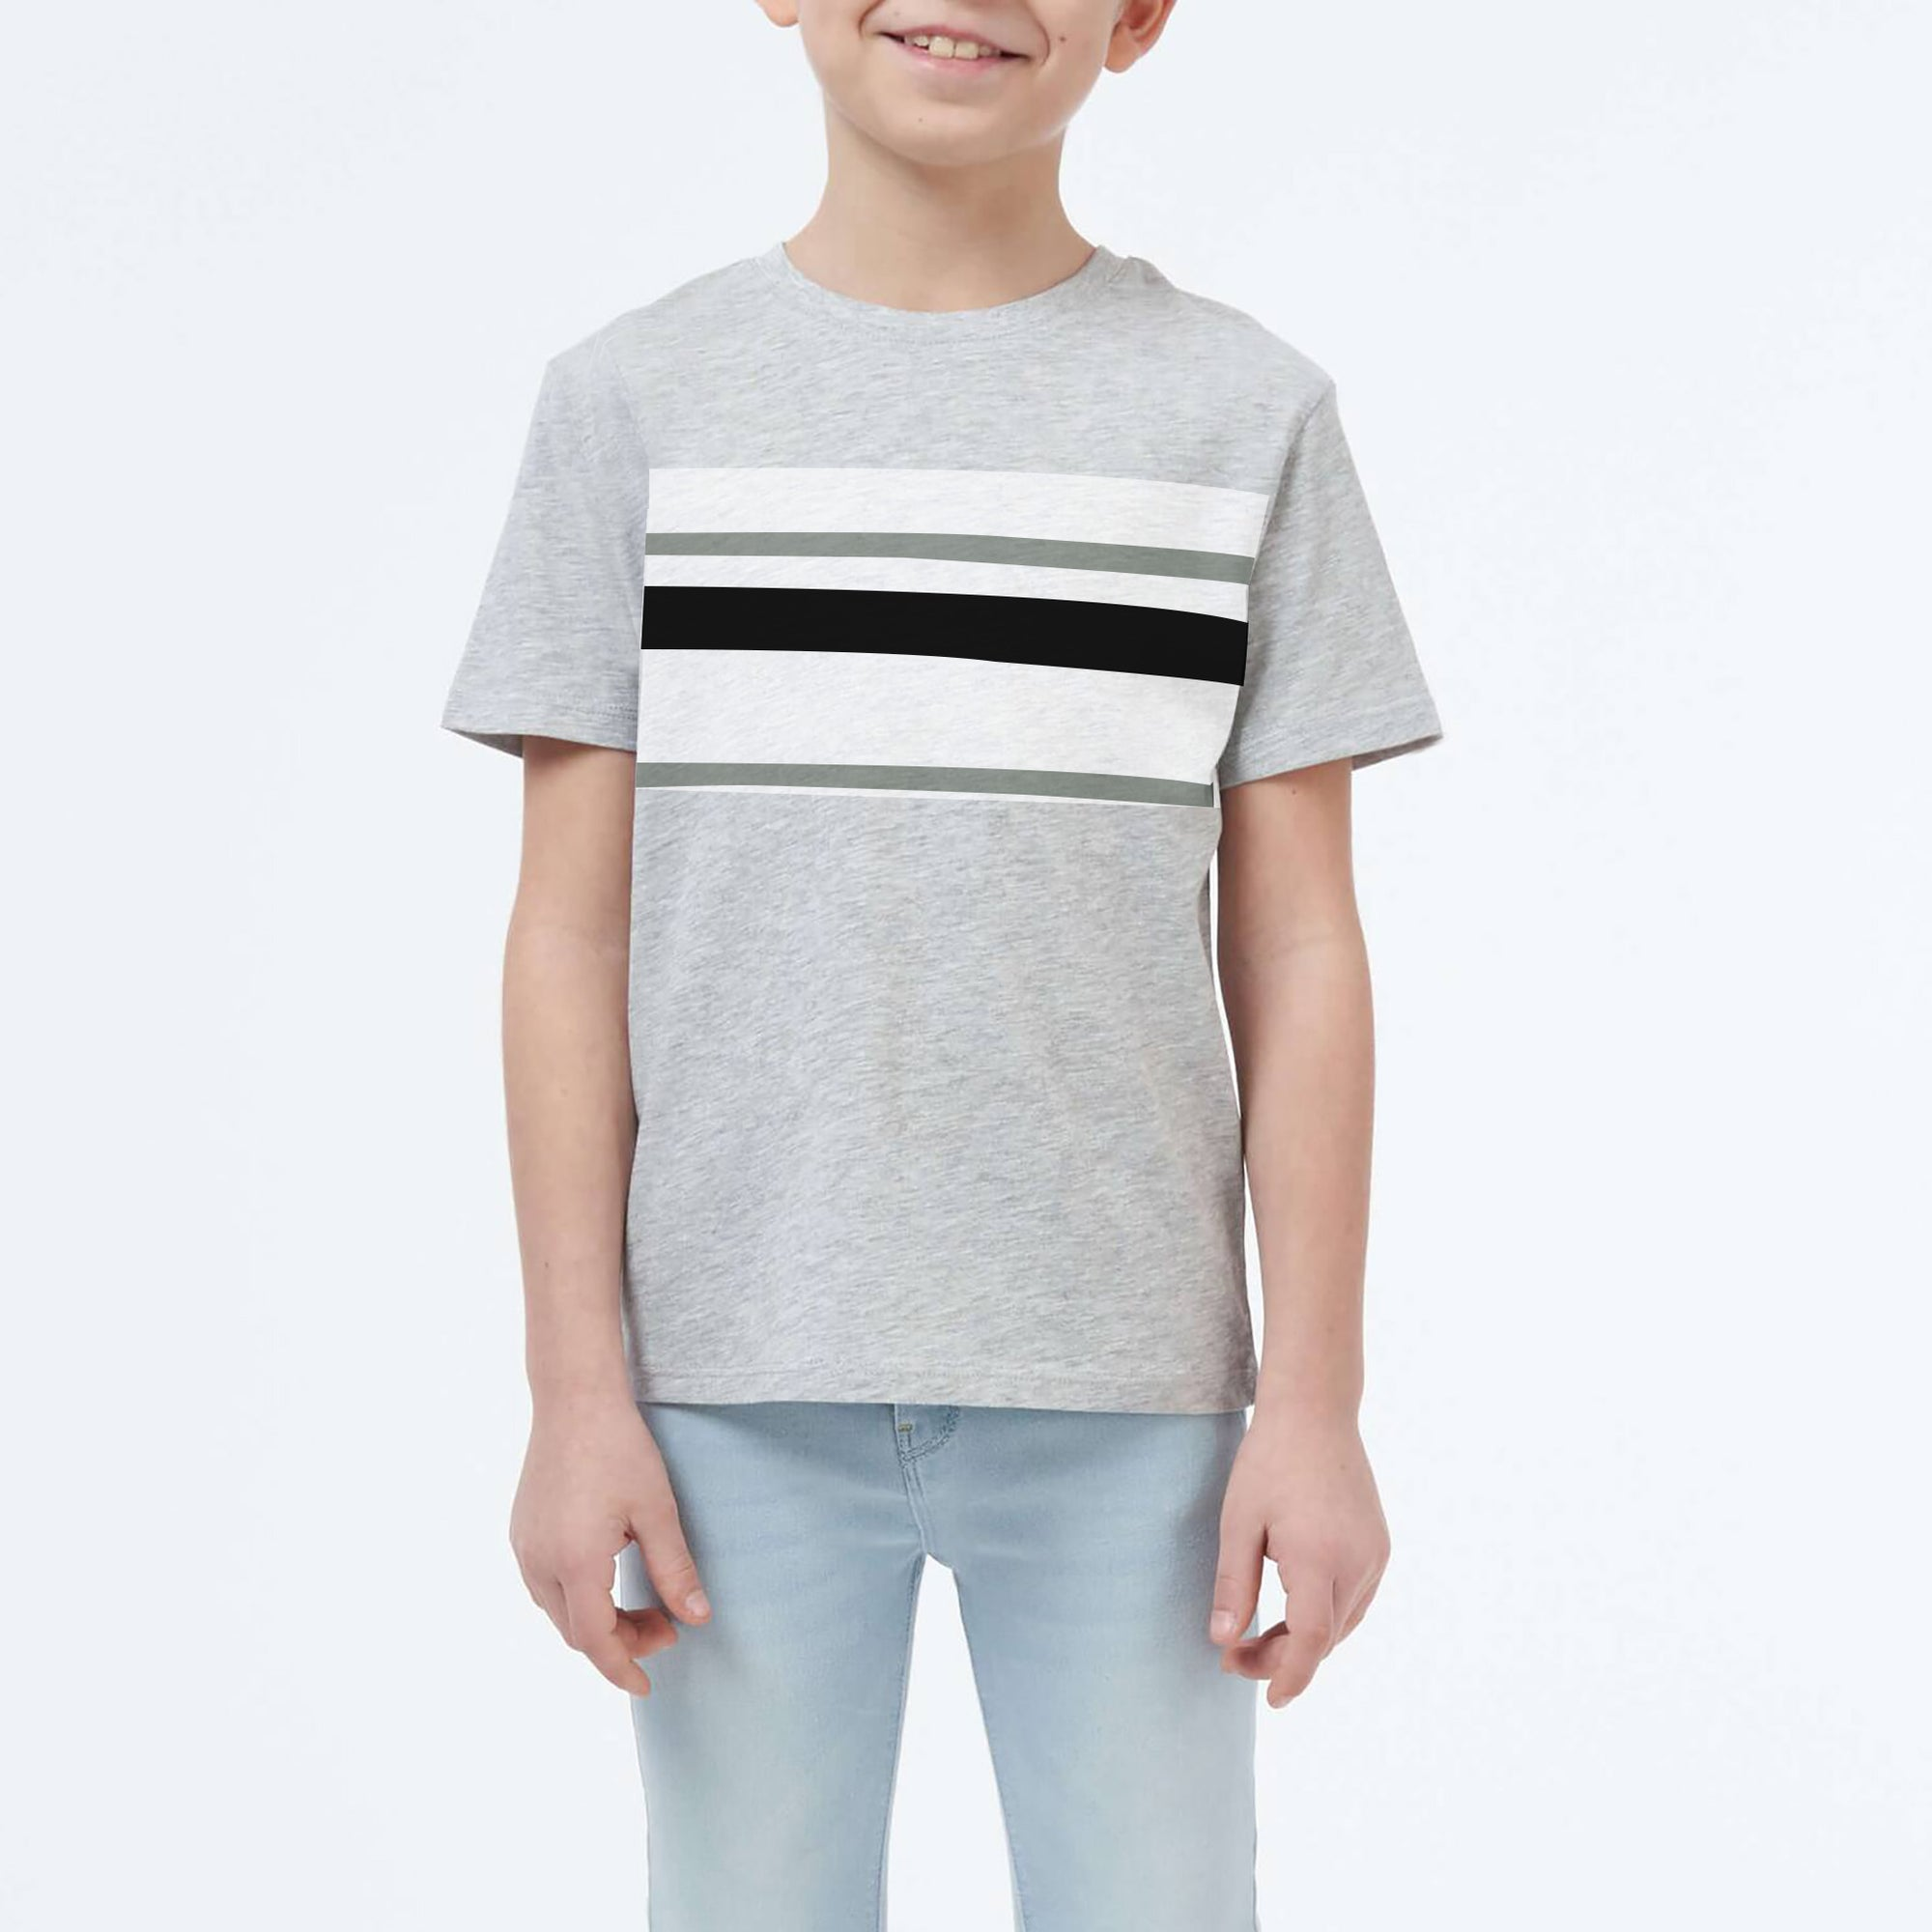 NK Crew Neck Tee Shirt For Kids-Grey Melange With Panels-SP2854